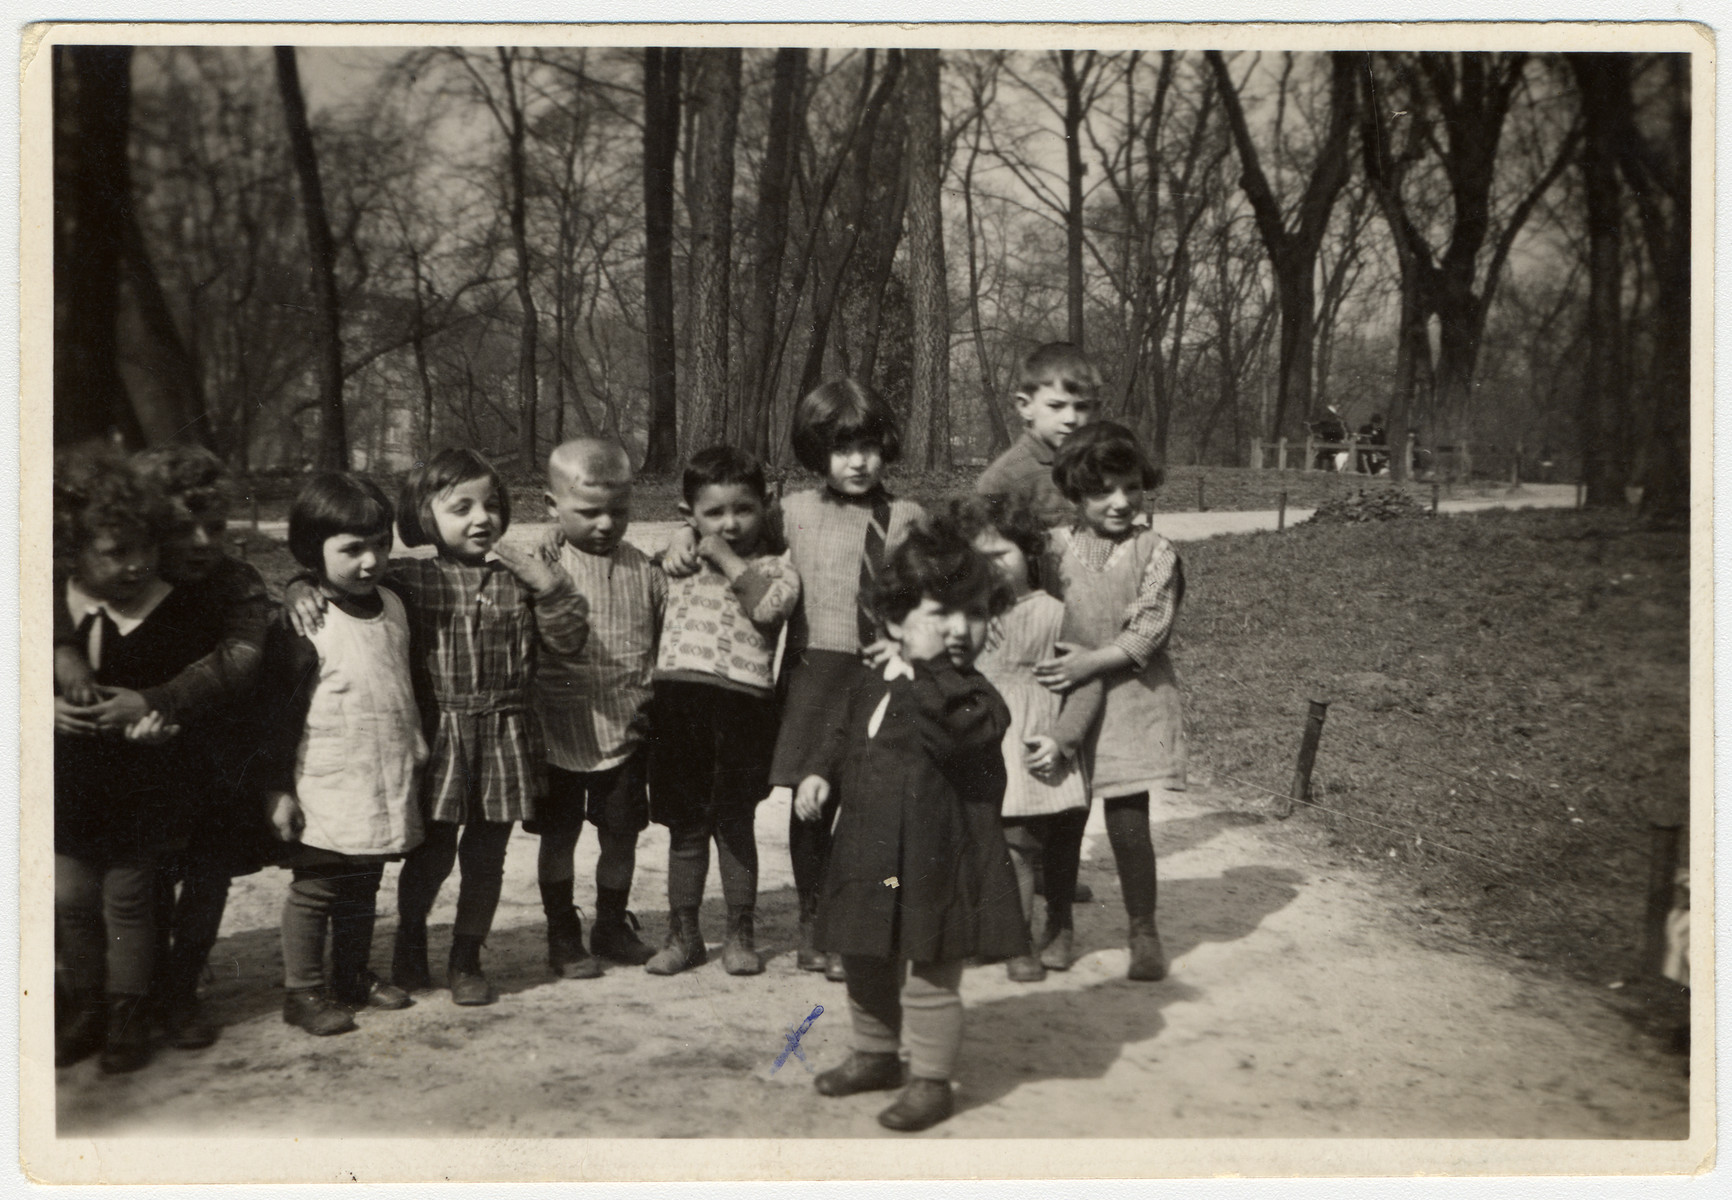 Group portrait of young children in a nursery school in Mannheim Germany.  Pictured in front is Margot Kalberman.